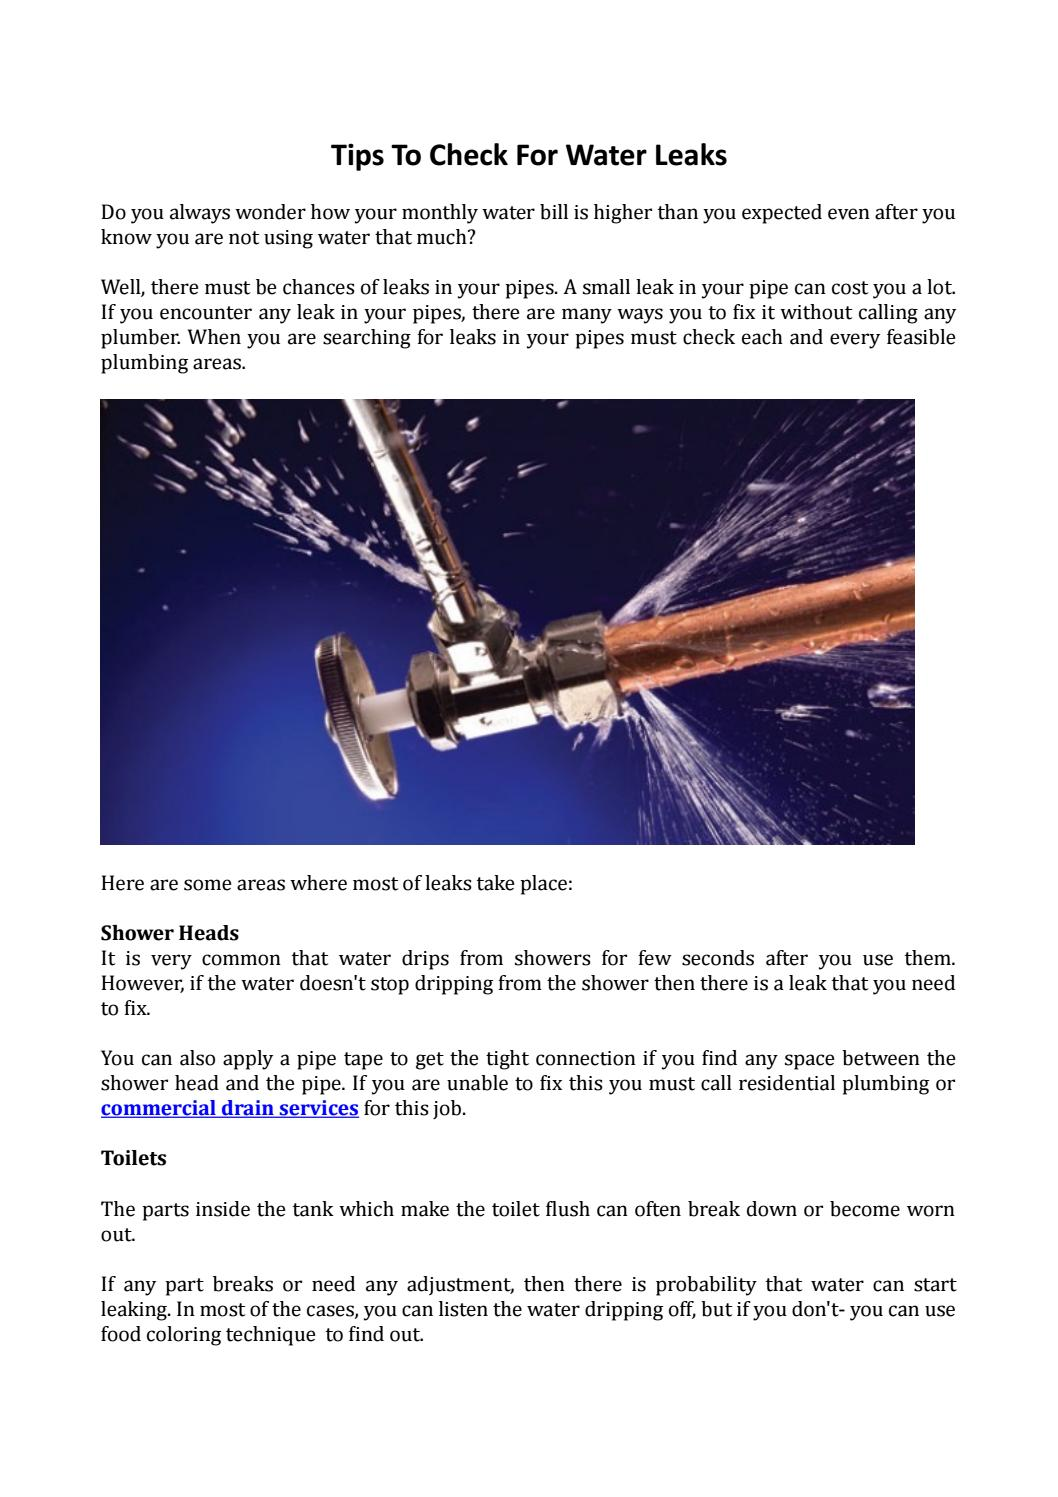 Tips to check for water leaks by The Hamilton Group - issuu